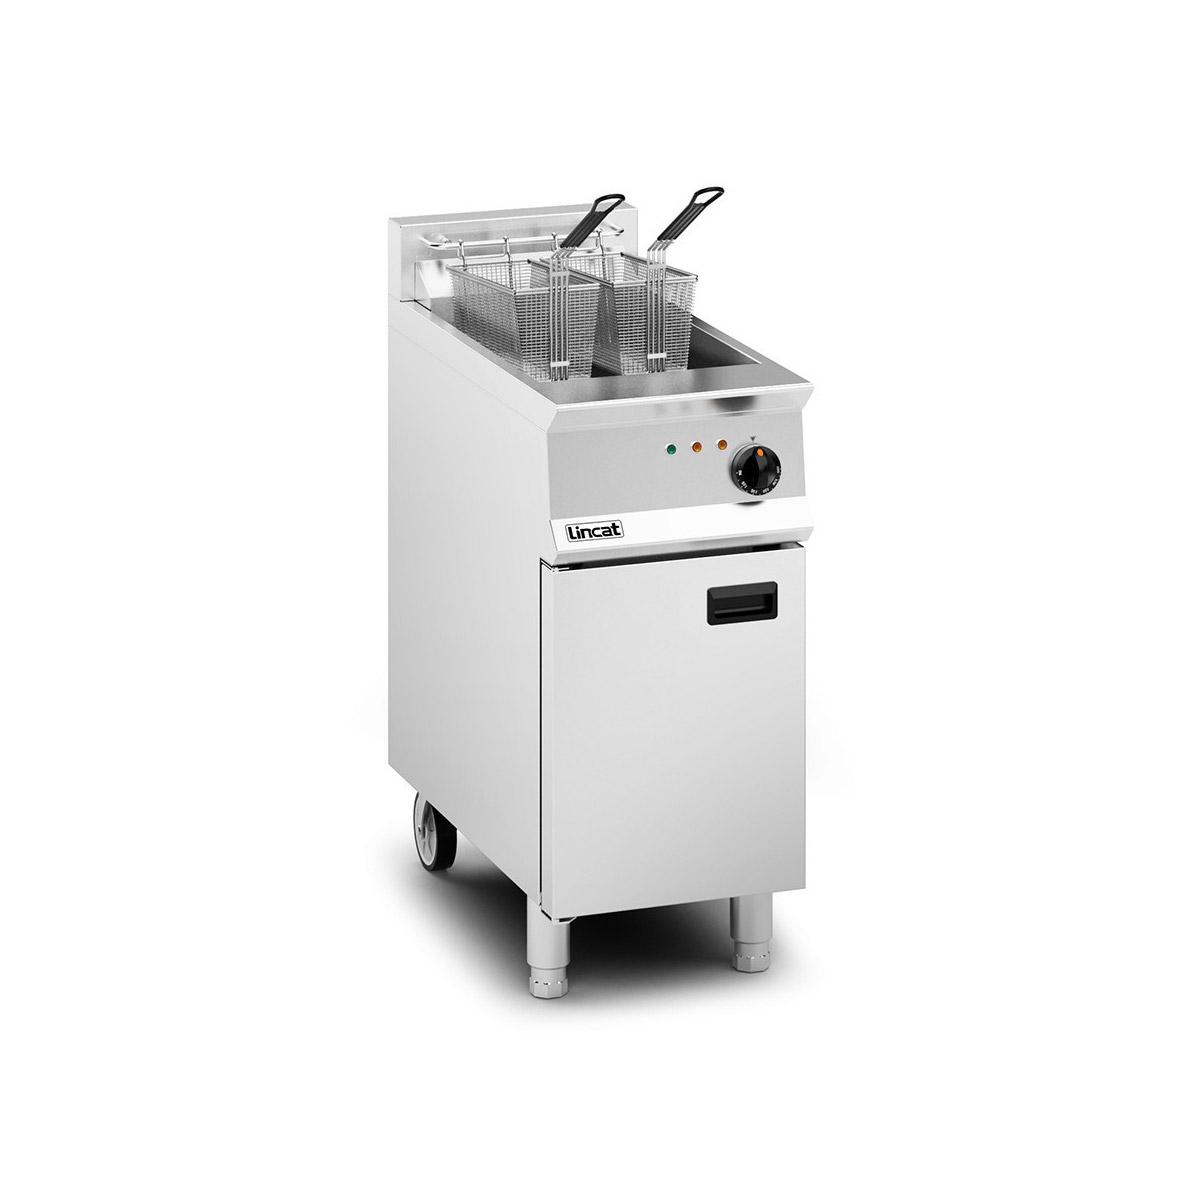 Lincat Opus 800 Electric Fryer Model: OE8114